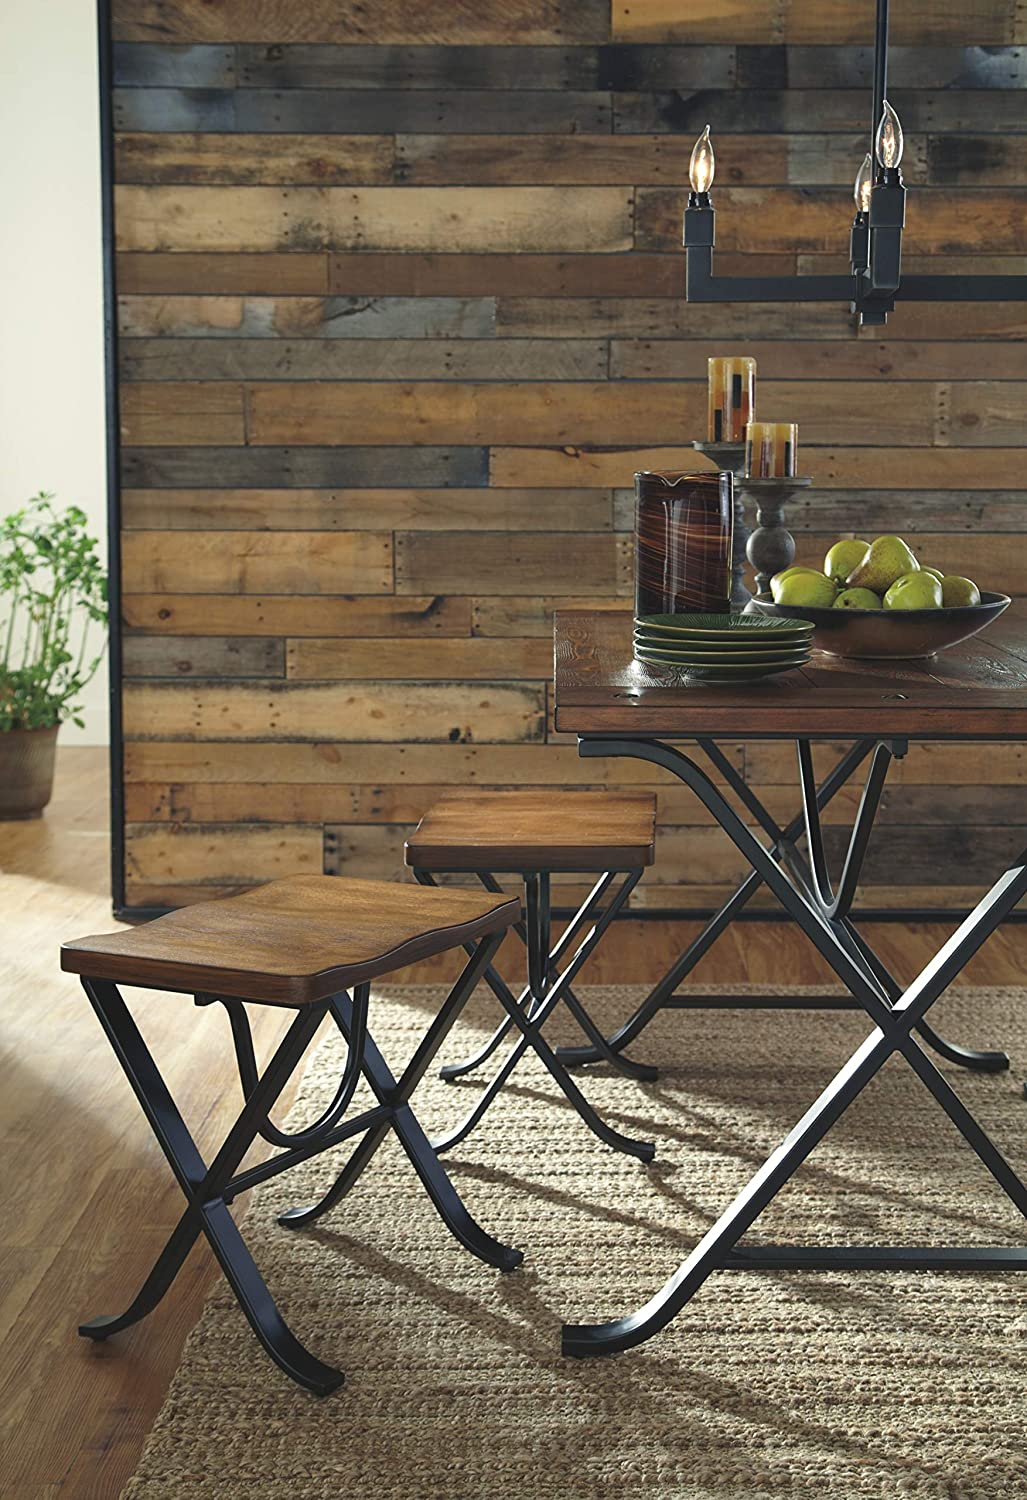 Medium Brown Wood Top and Black Metal Legs Freimore Dining Room Table and Stools Ashley Furniture Signature Design Set of 5